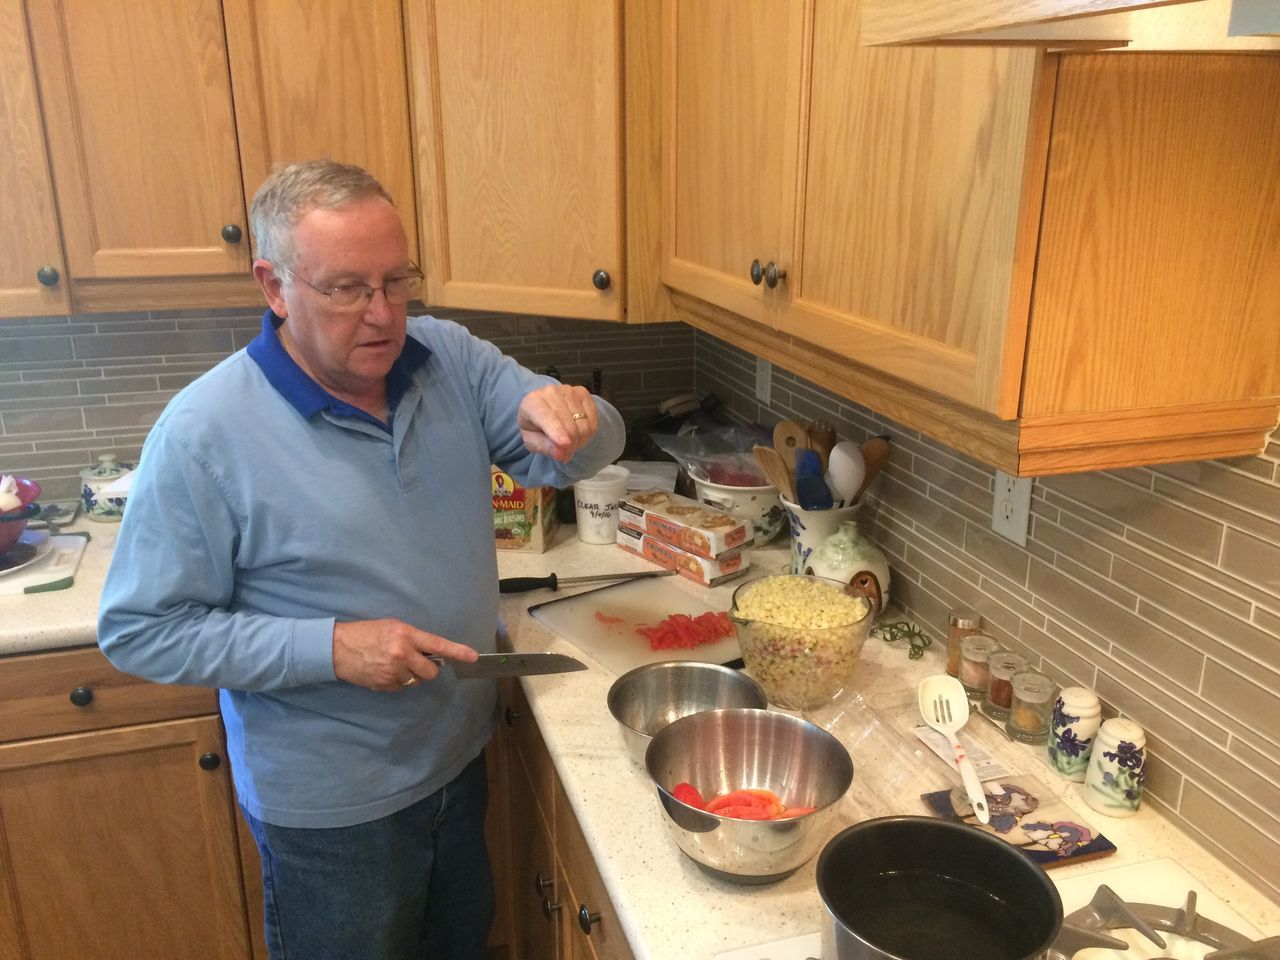 Home canning corn salsa, California Adult Adults Only Canning Corn Day Domestic Kitchen Domestic Room Food Food And Drink Freshness Homemade Indoors  Kitchen Men One Man Only One Person Only Men People Preparation  Preperation Real People Salsa Senior Adult Stove